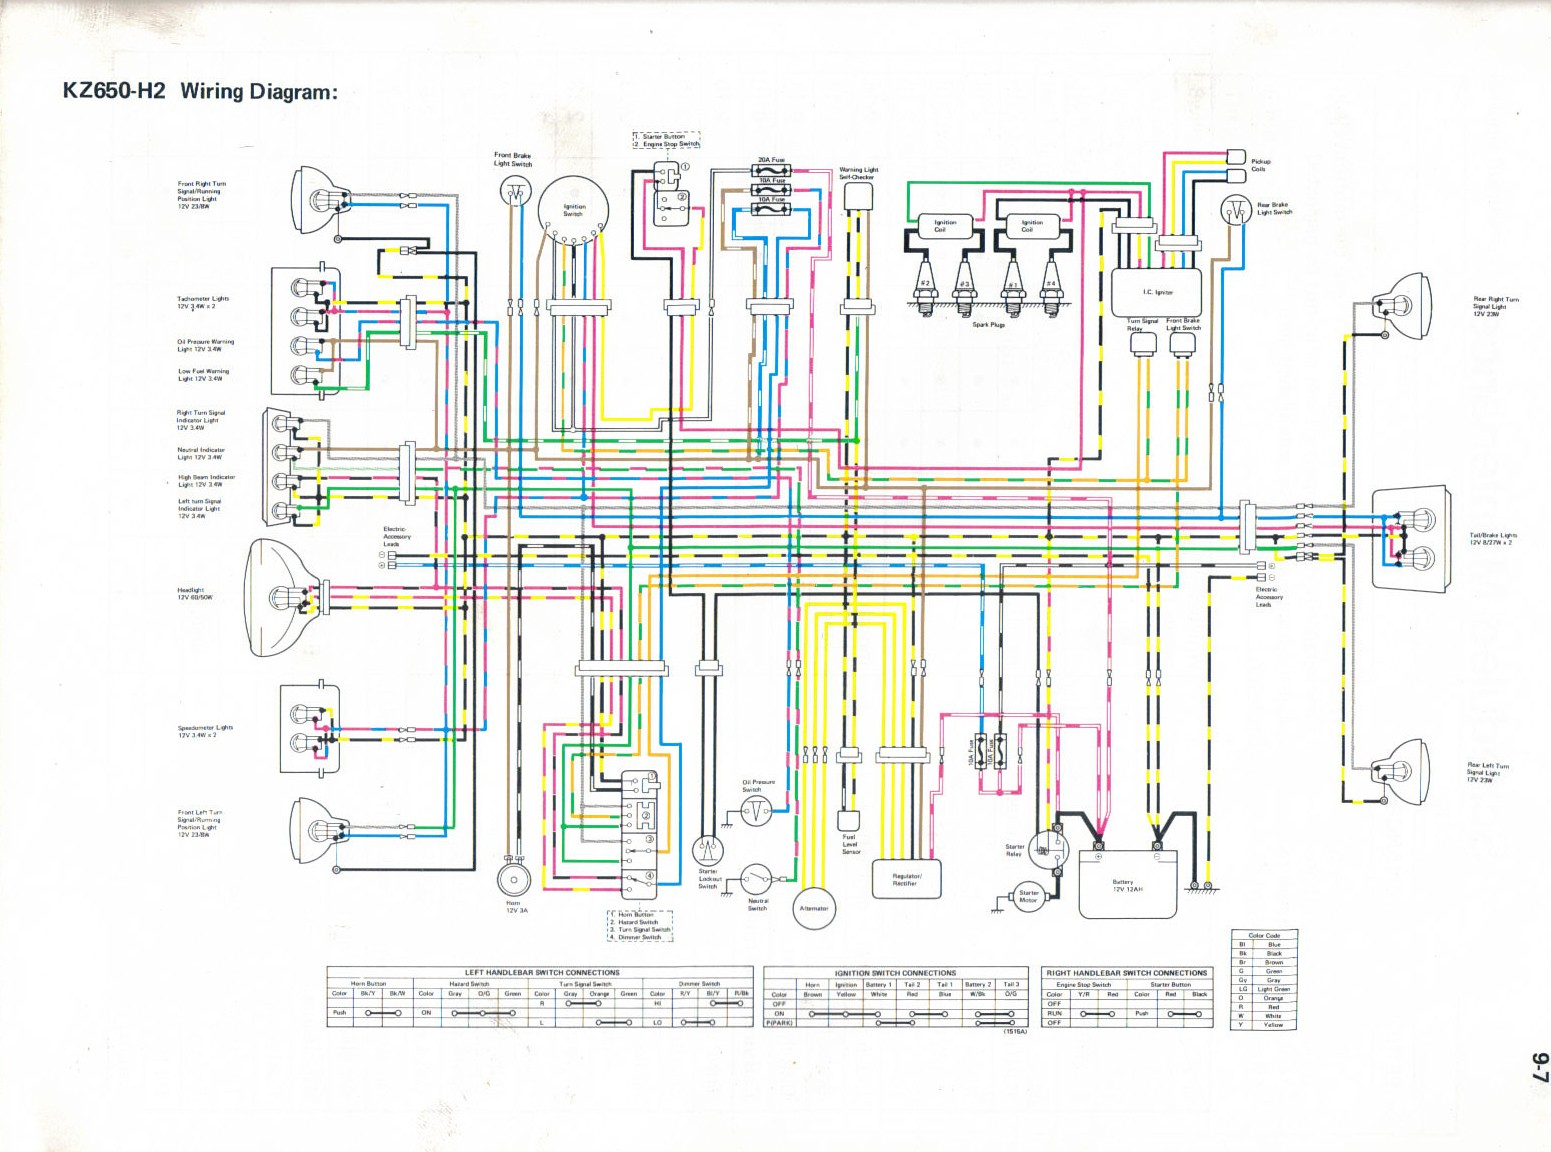 YM_2967] 900 Custom Wiring Diagram Free Download Wiring Diagram SchematicPapxe Cosm Inrebe Push Chor Over Ommit Benkeme Mohammedshrine Librar Wiring  101